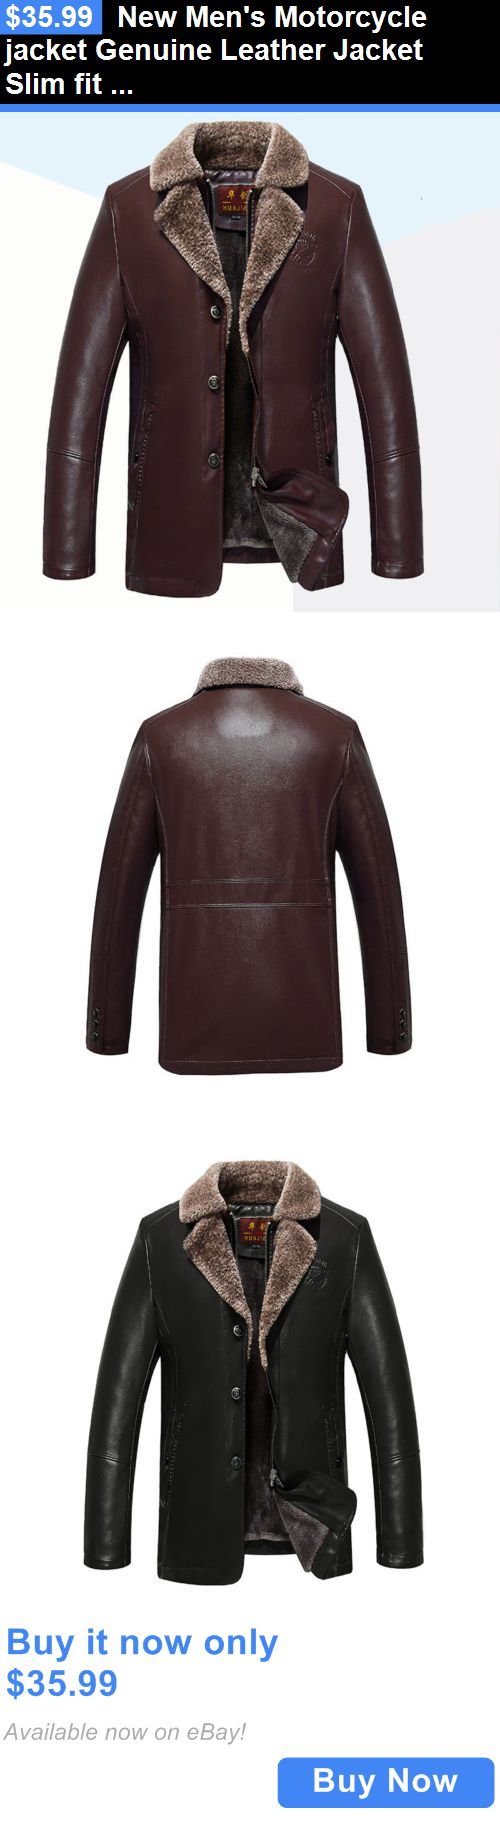 Men Coats And Jackets: New Mens Motorcycle Jacket Genuine Leather Jacket Slim Fit Biker BUY IT NOW ONLY: $35.99